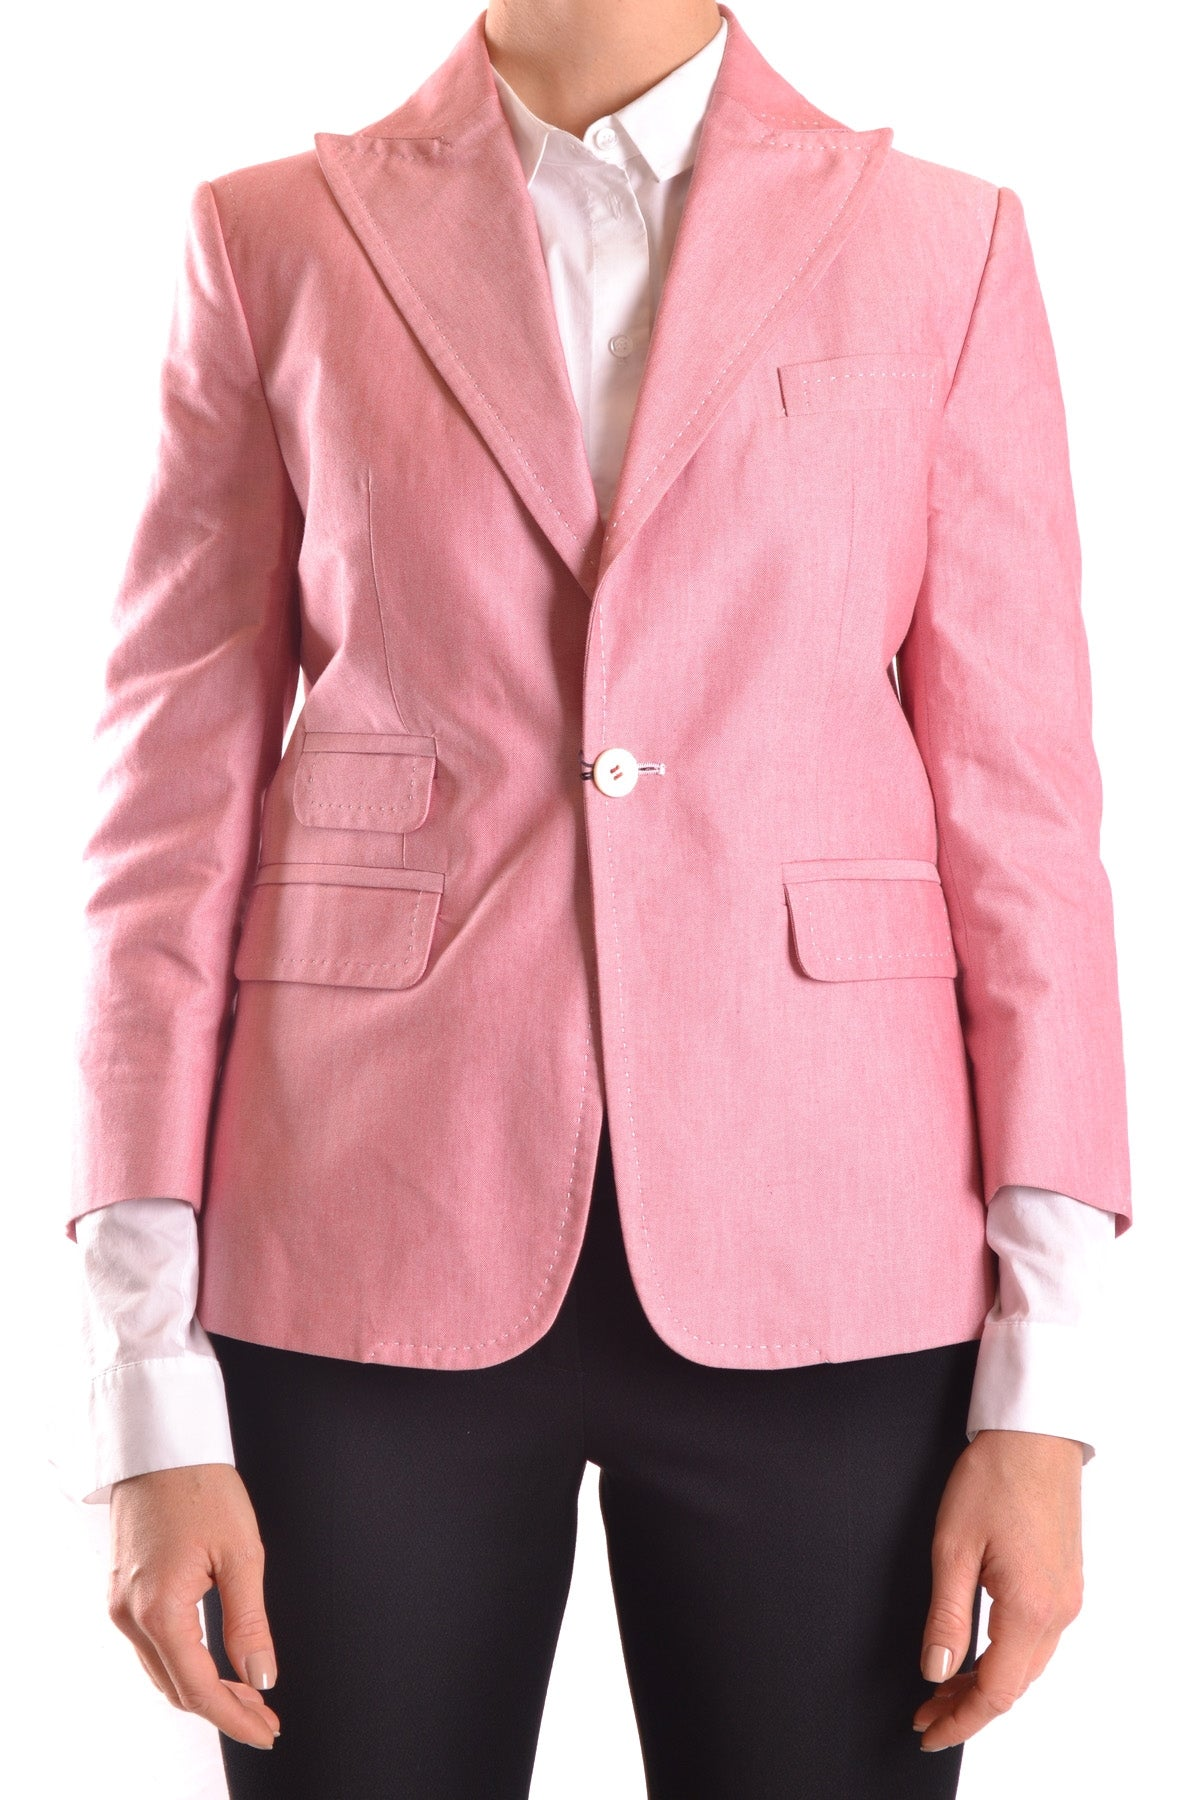 Jacket Dsquared-Jacket - WOMAN-Product Details Terms: New With LabelYear: 2017Main Color: PinkSeason: Spring / SummerMade In: ItalySize: ItGender: WomanClothing Type: JacketComposition: Cotton 100%-Keyomi-Sook